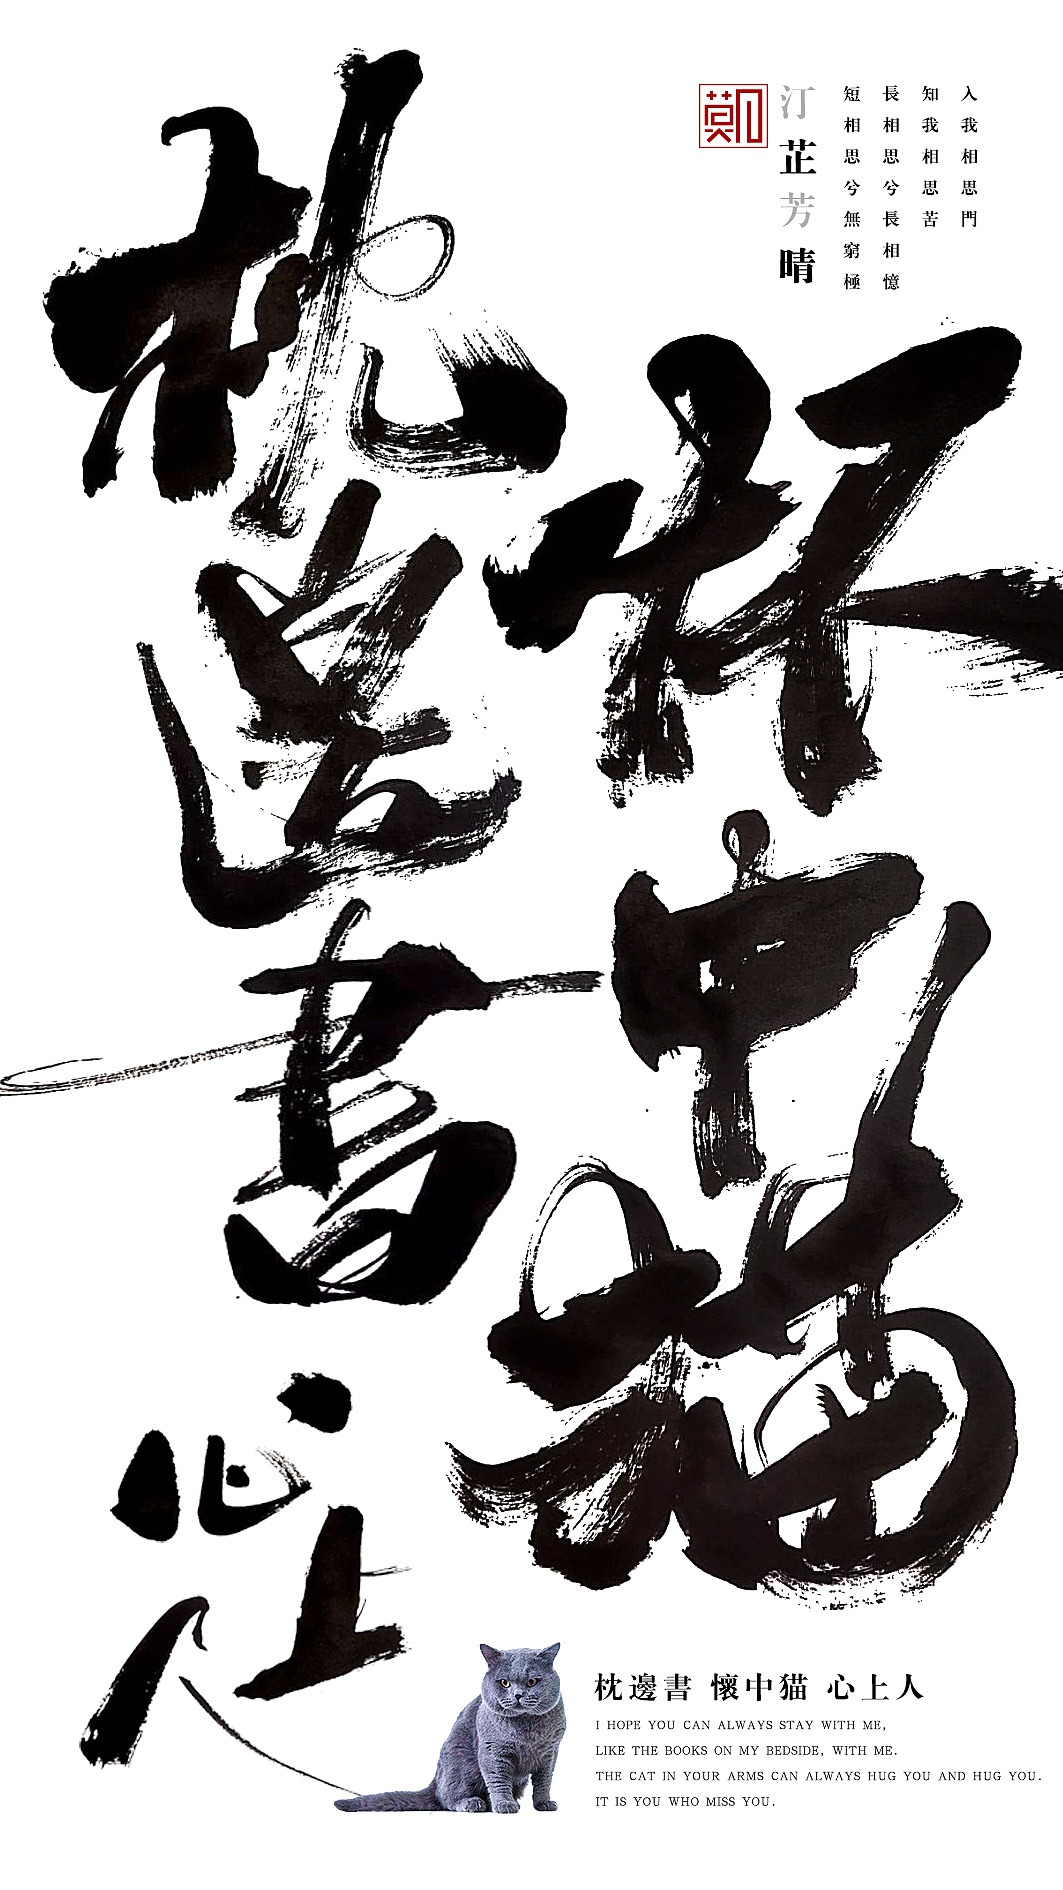 Chinese Creative Font Design-Writing of the First Issue of Cross-border Dangdao